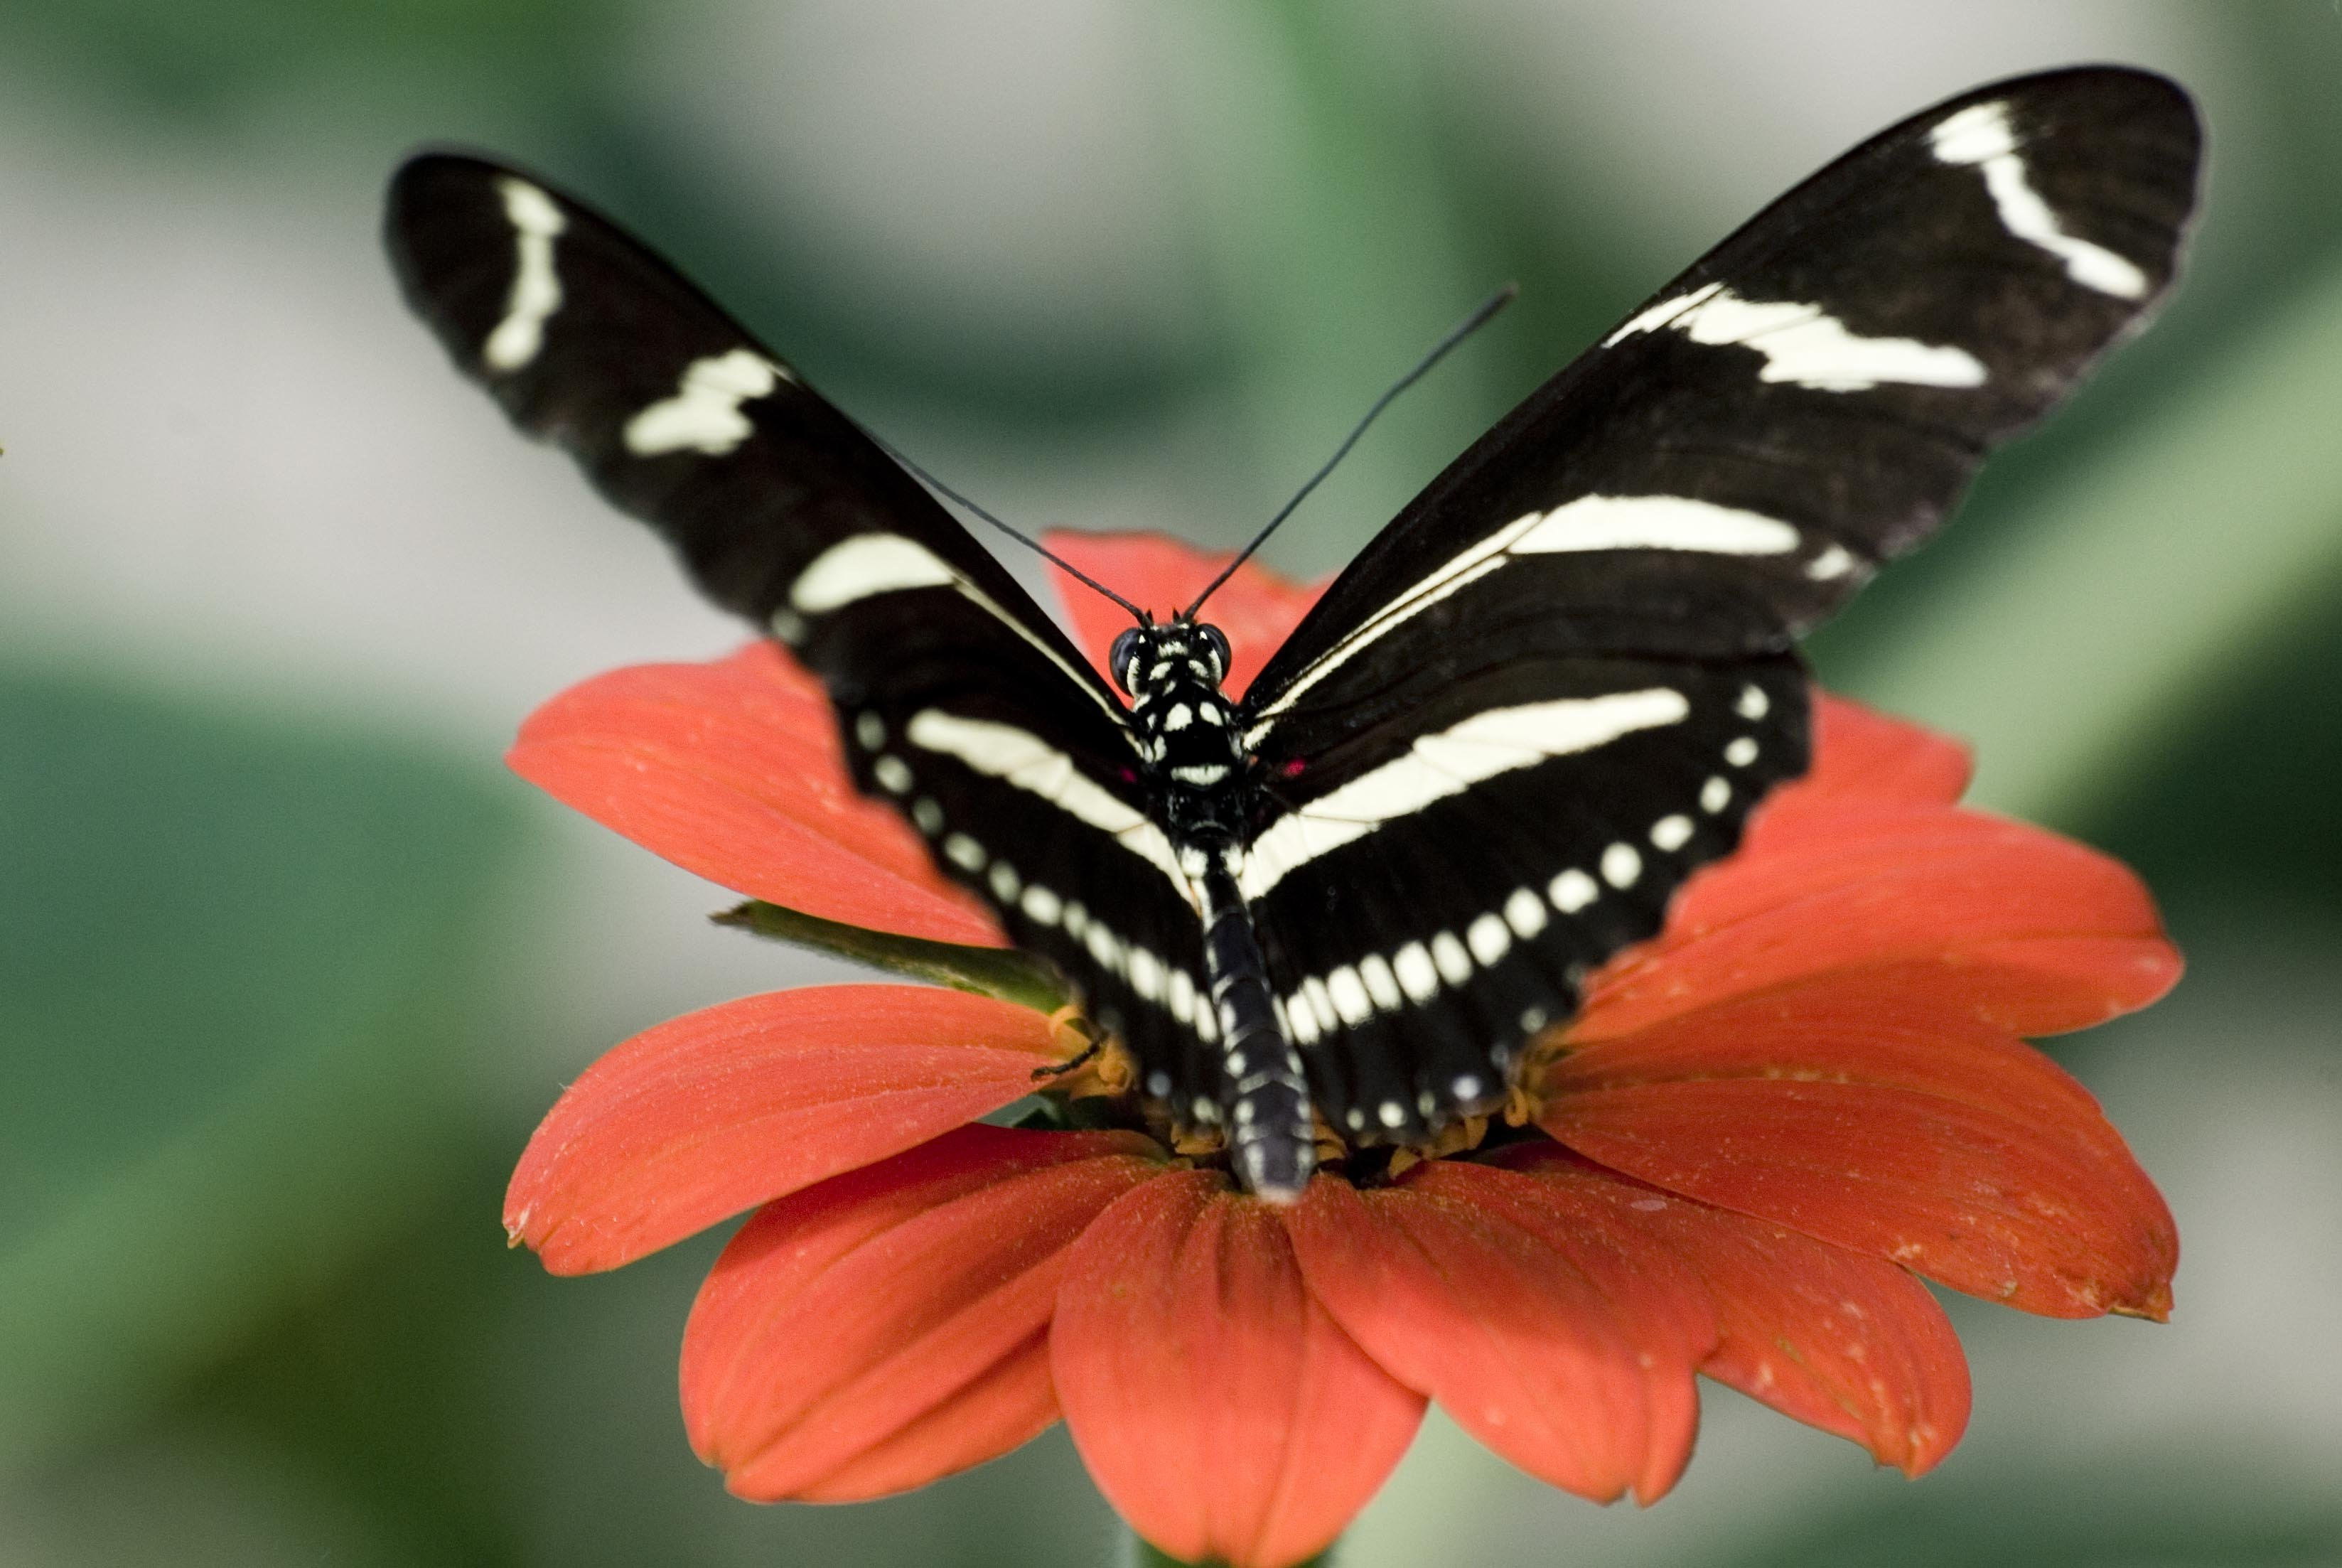 Big Black And White Butterfly On A Flower